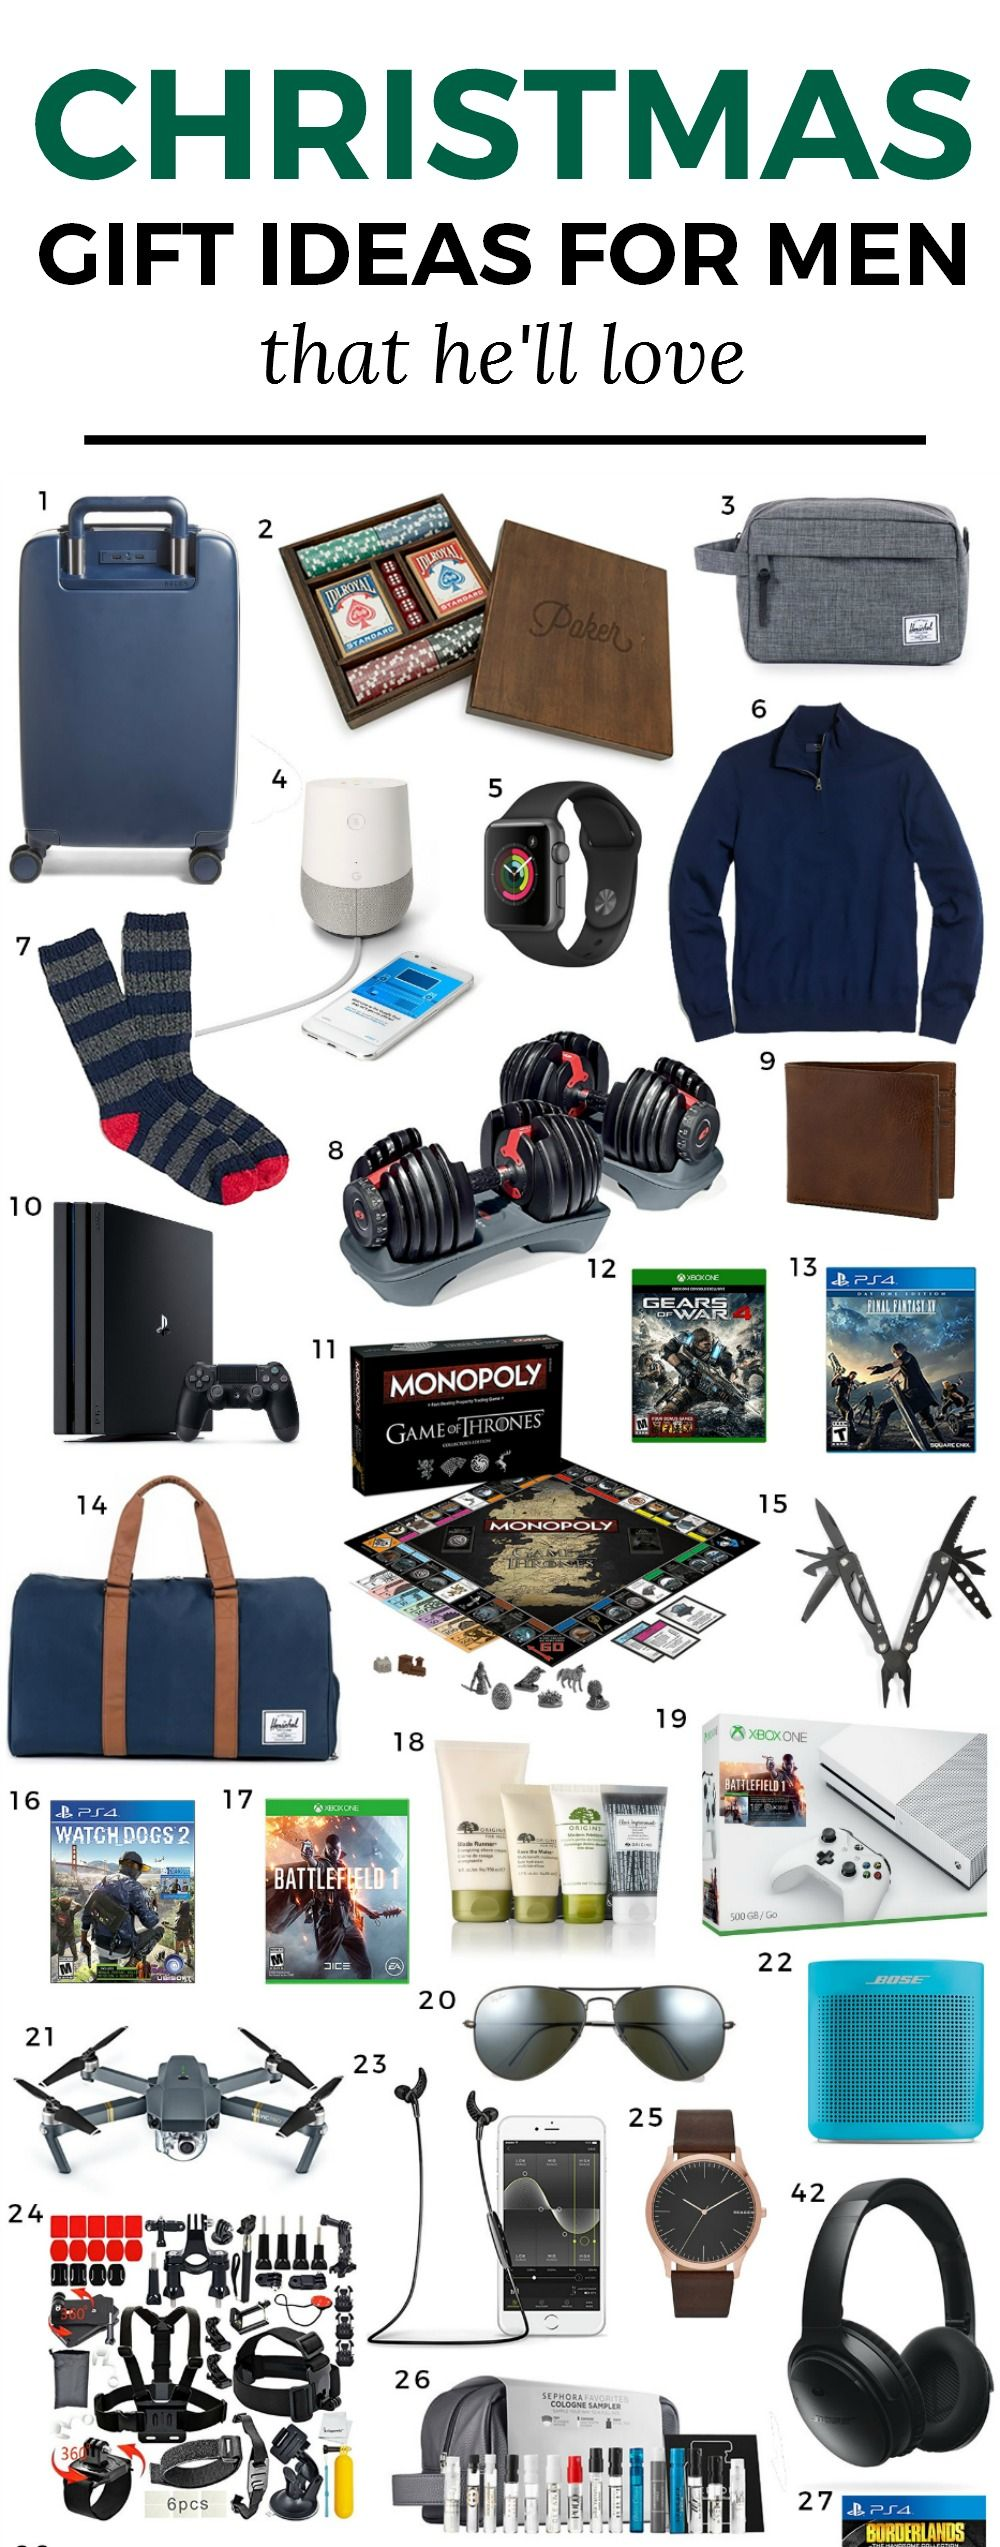 8560b535b9f0 The Best Christmas Gift Ideas for Men